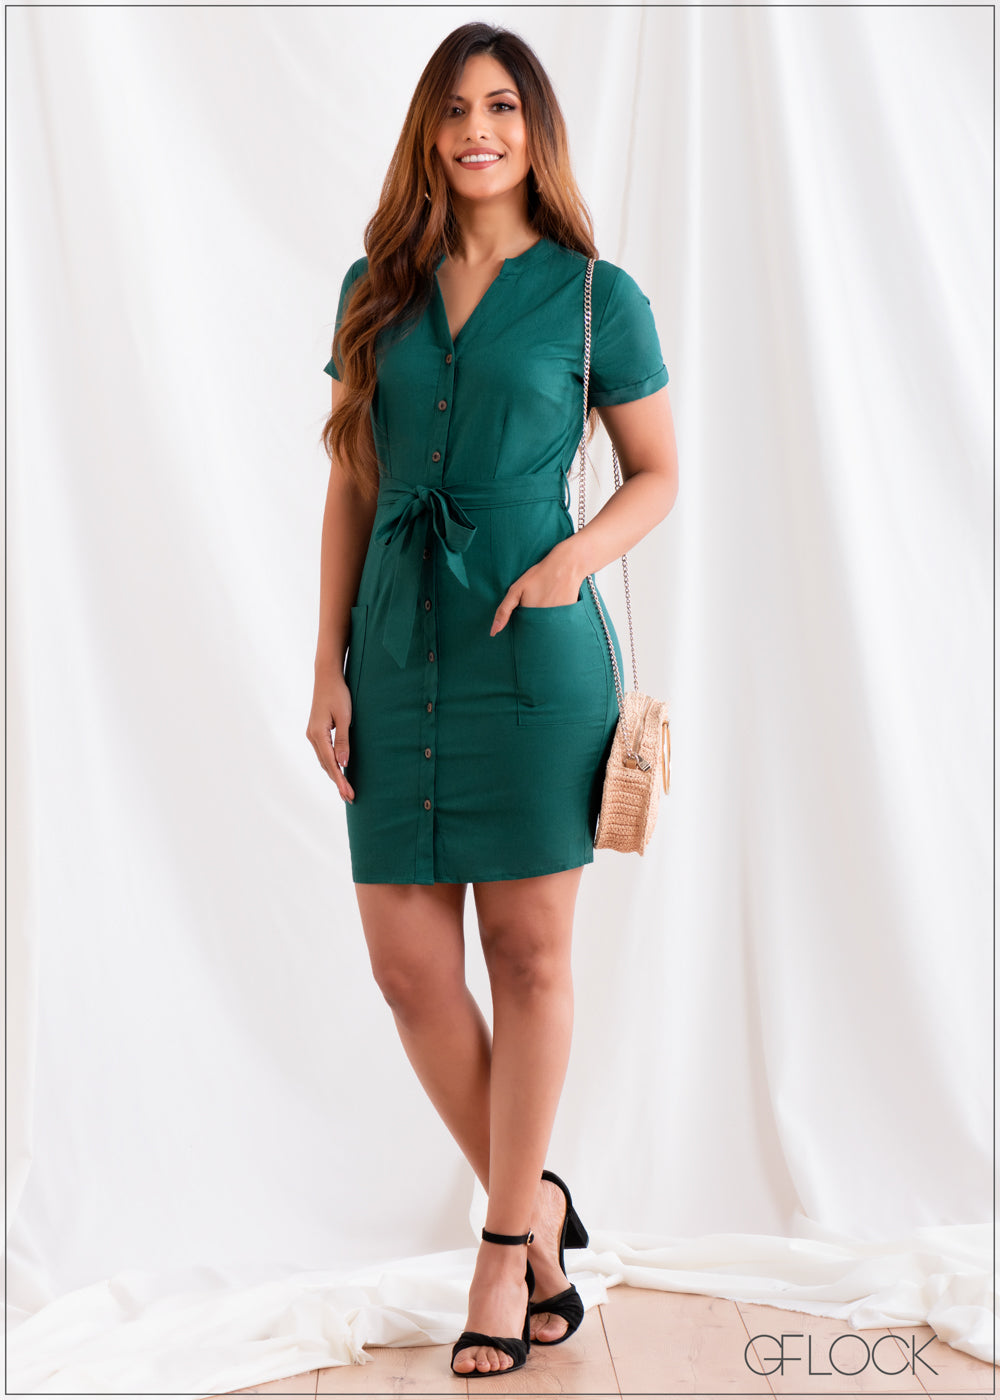 Regular Fit Dress - Linen 2501